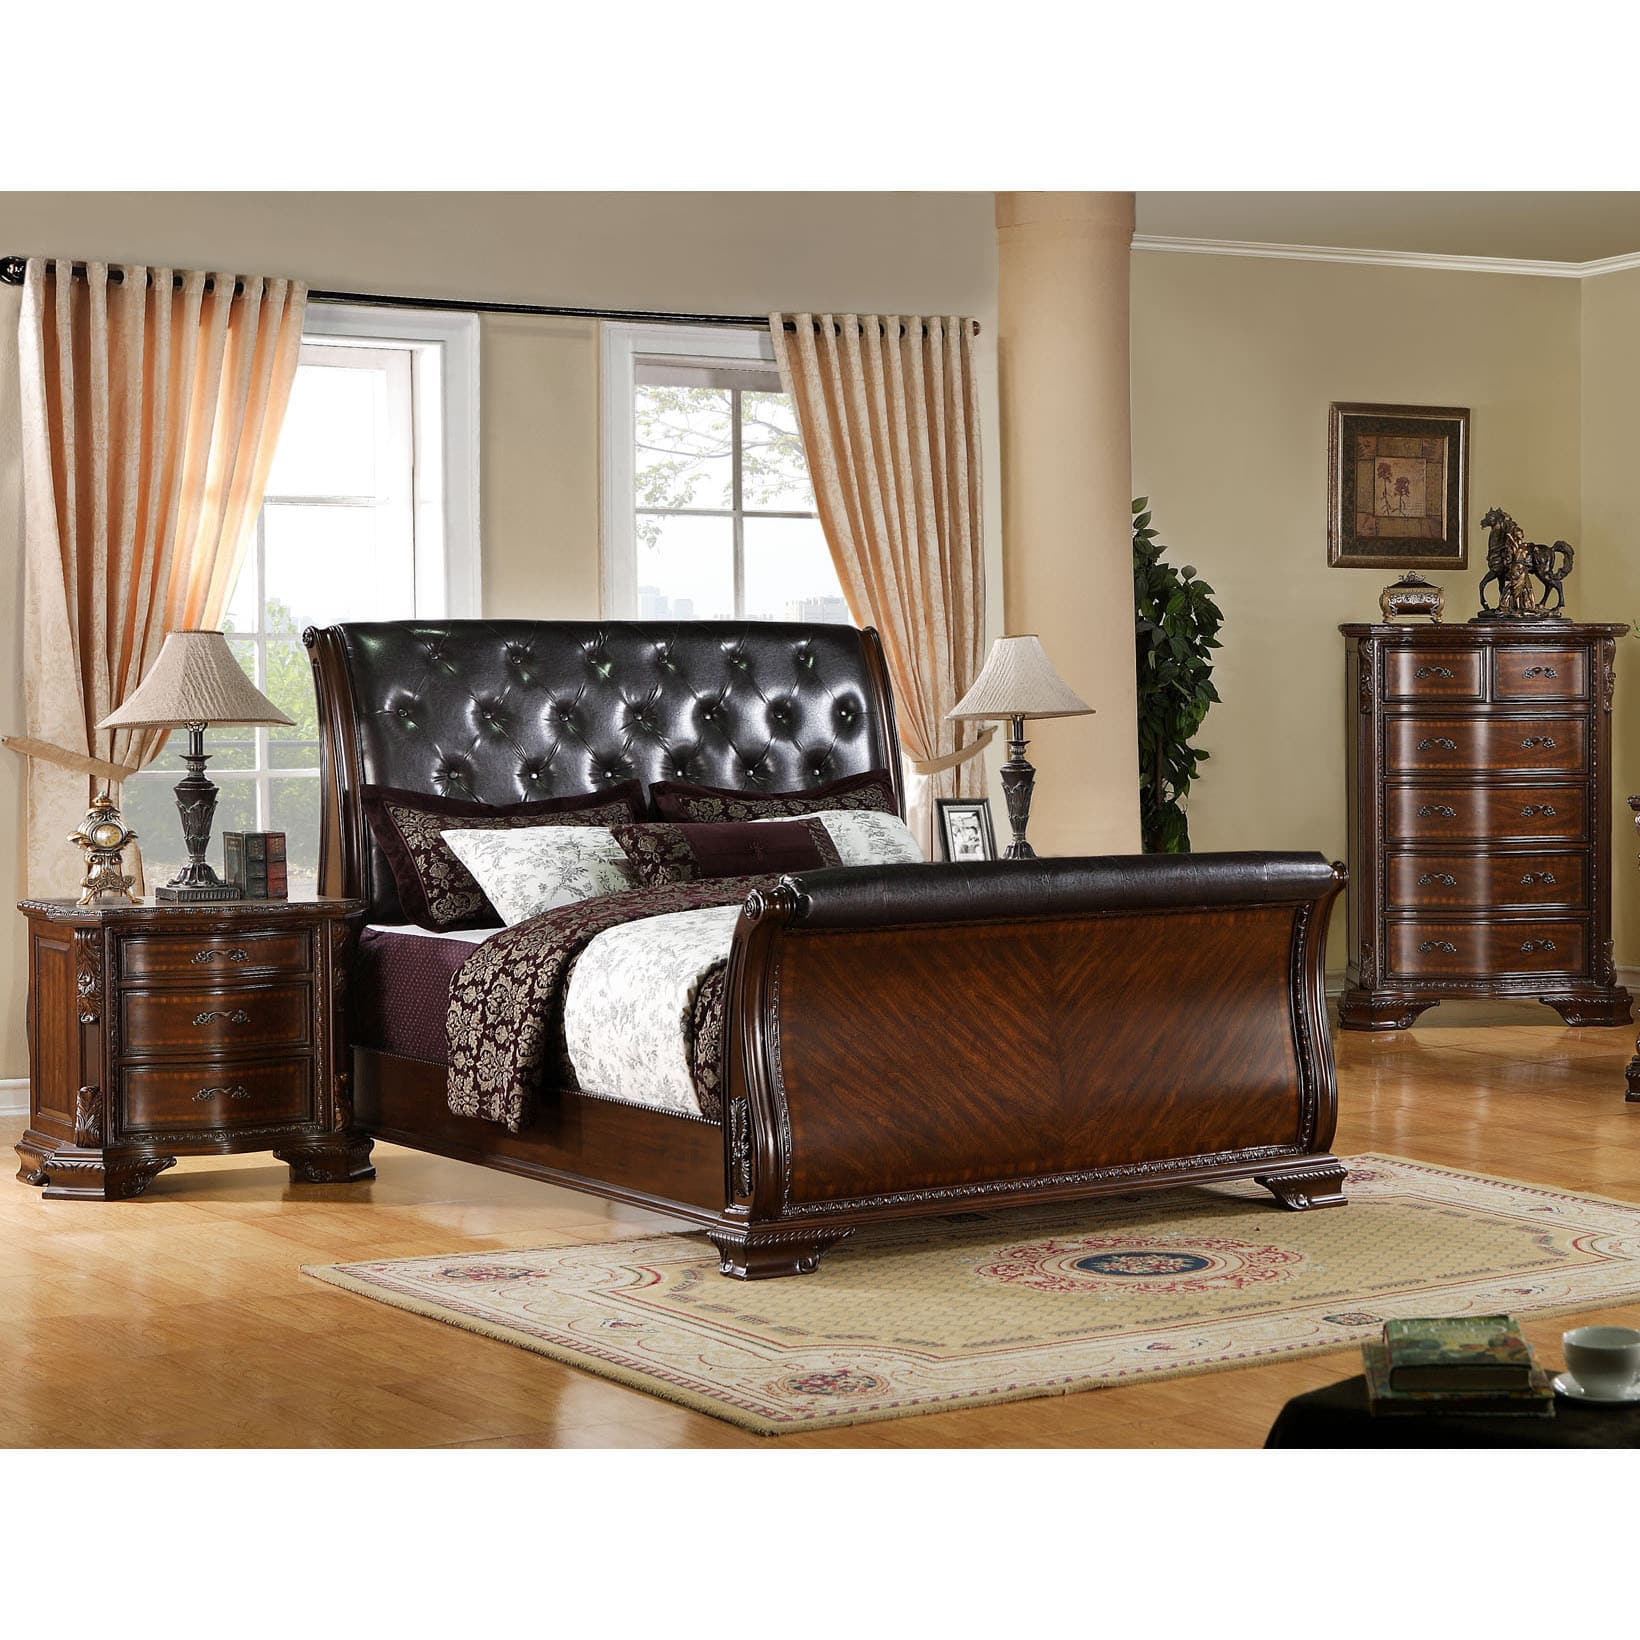 Furniture of America  Luxury Brown Cherry Baroque Style 3-Piece Bedroom Set